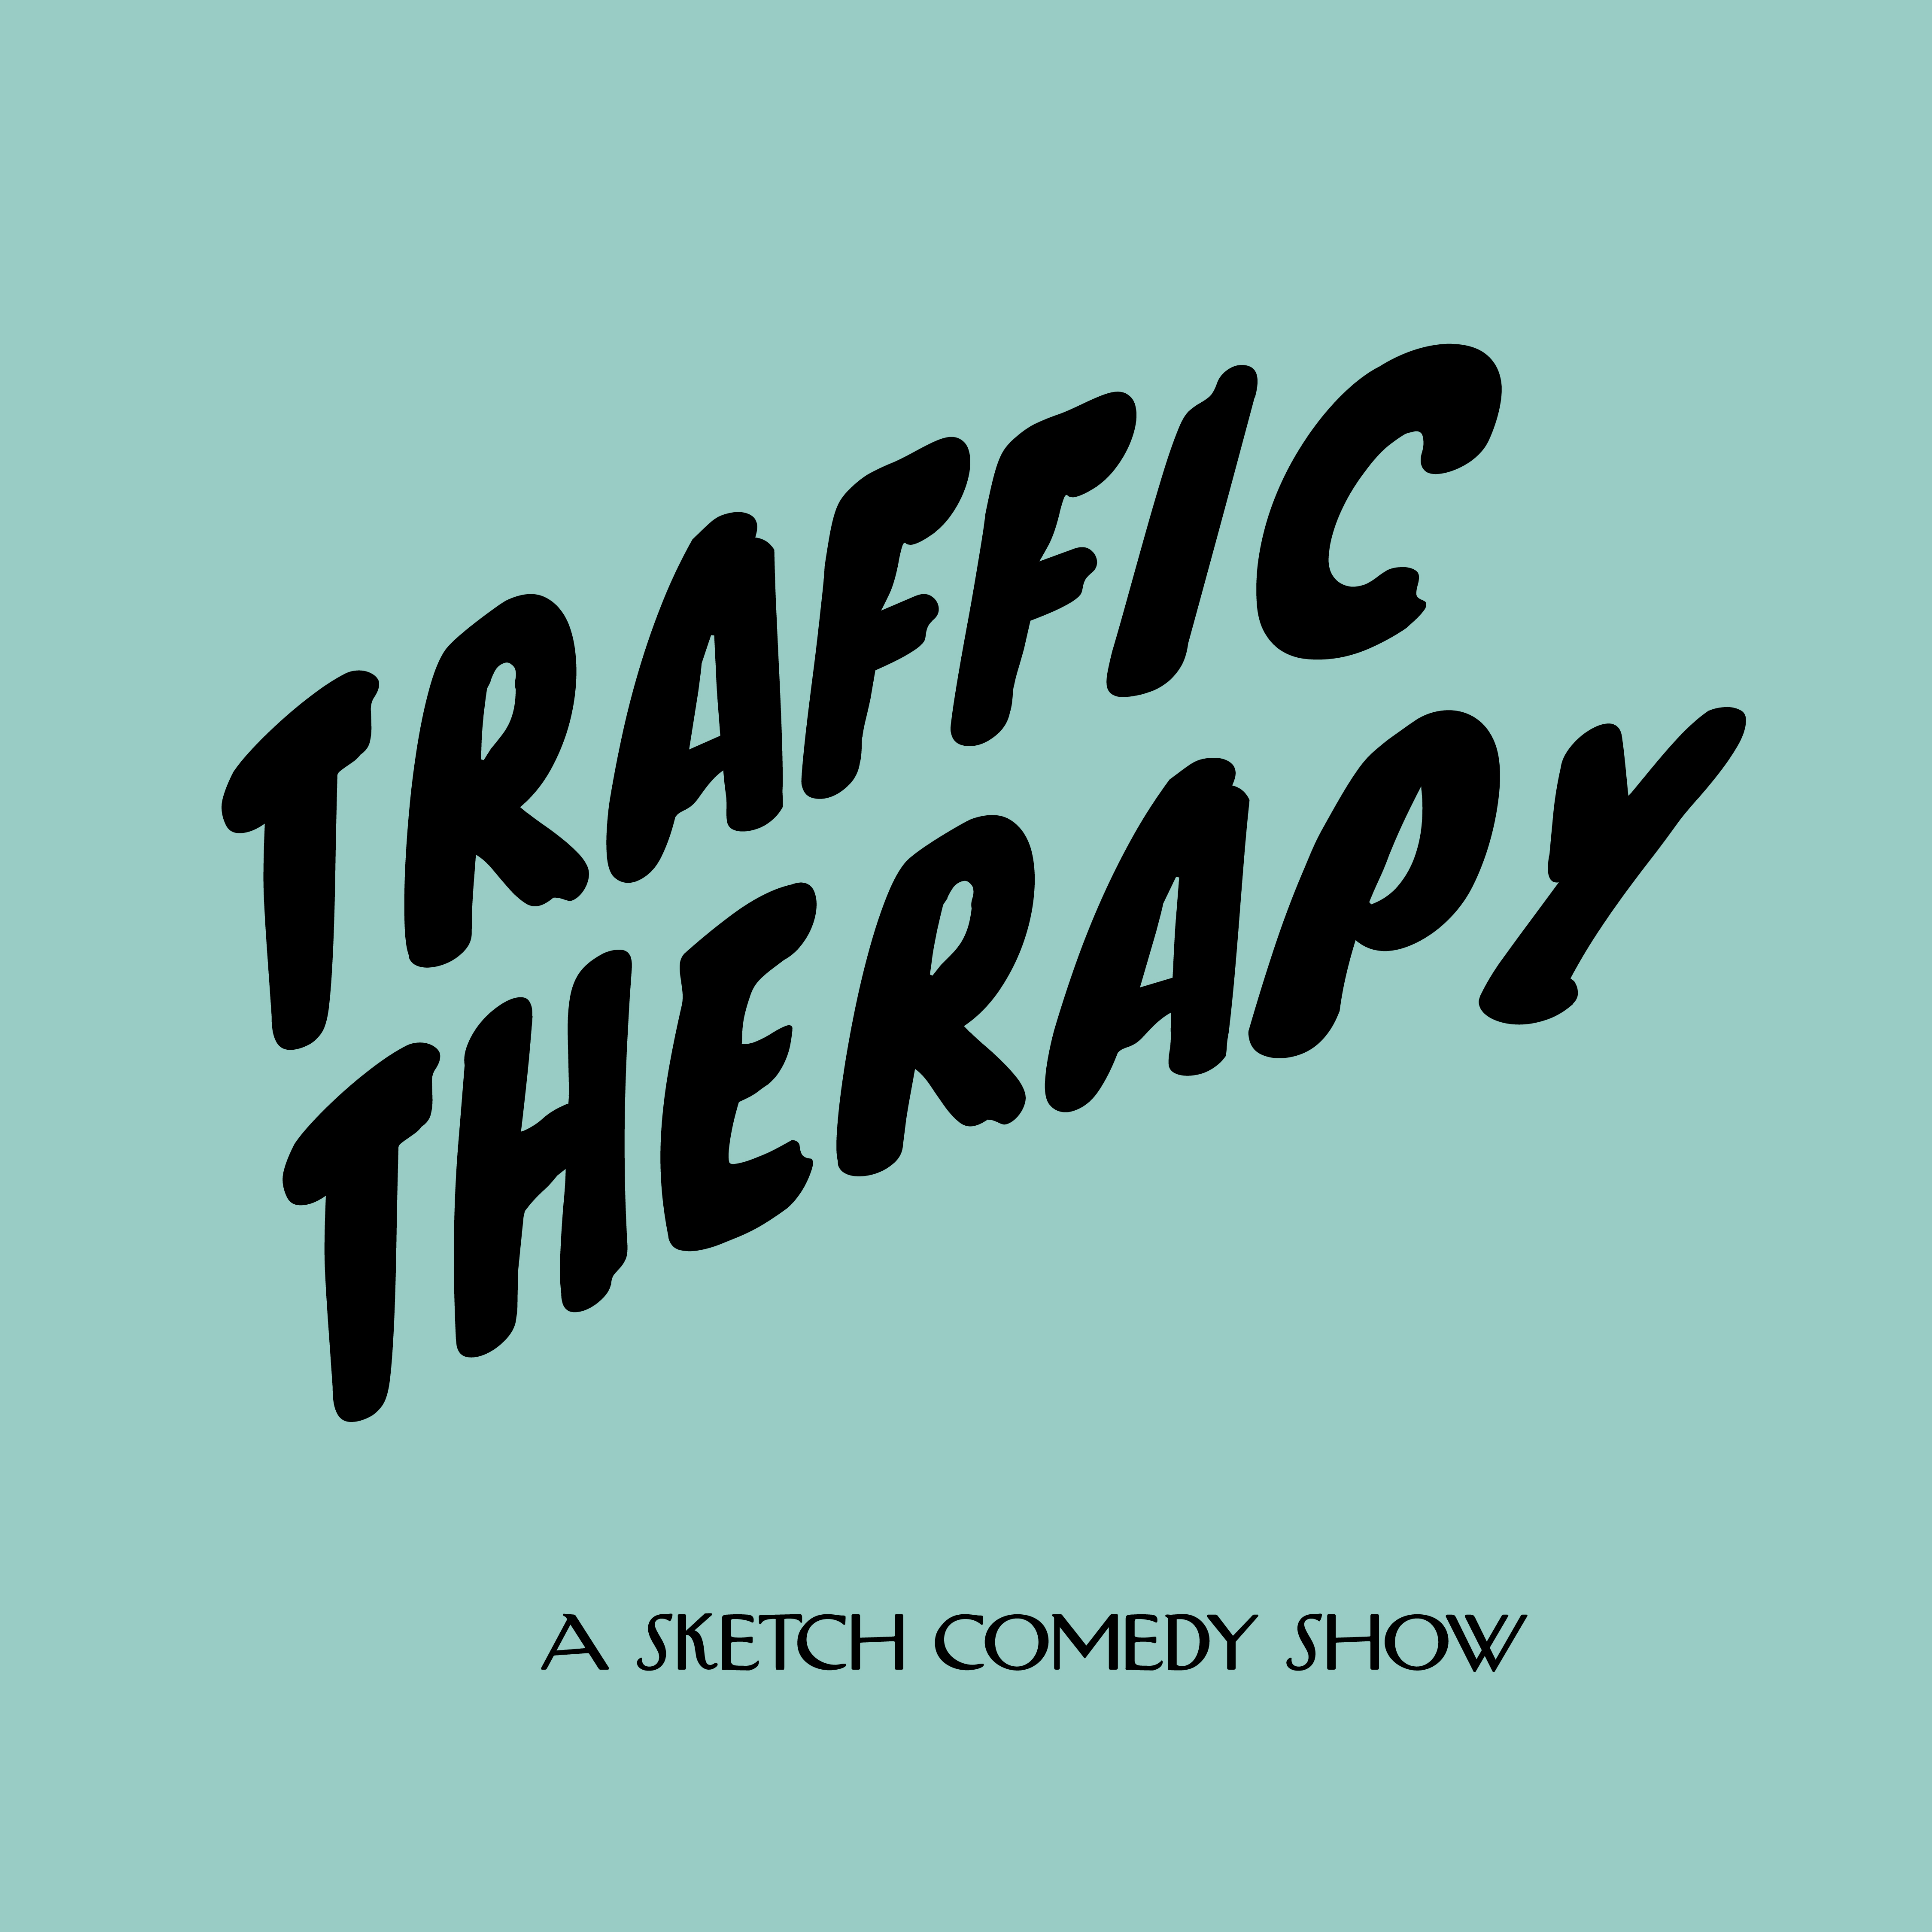 Traffic Therapy One Minute Promo